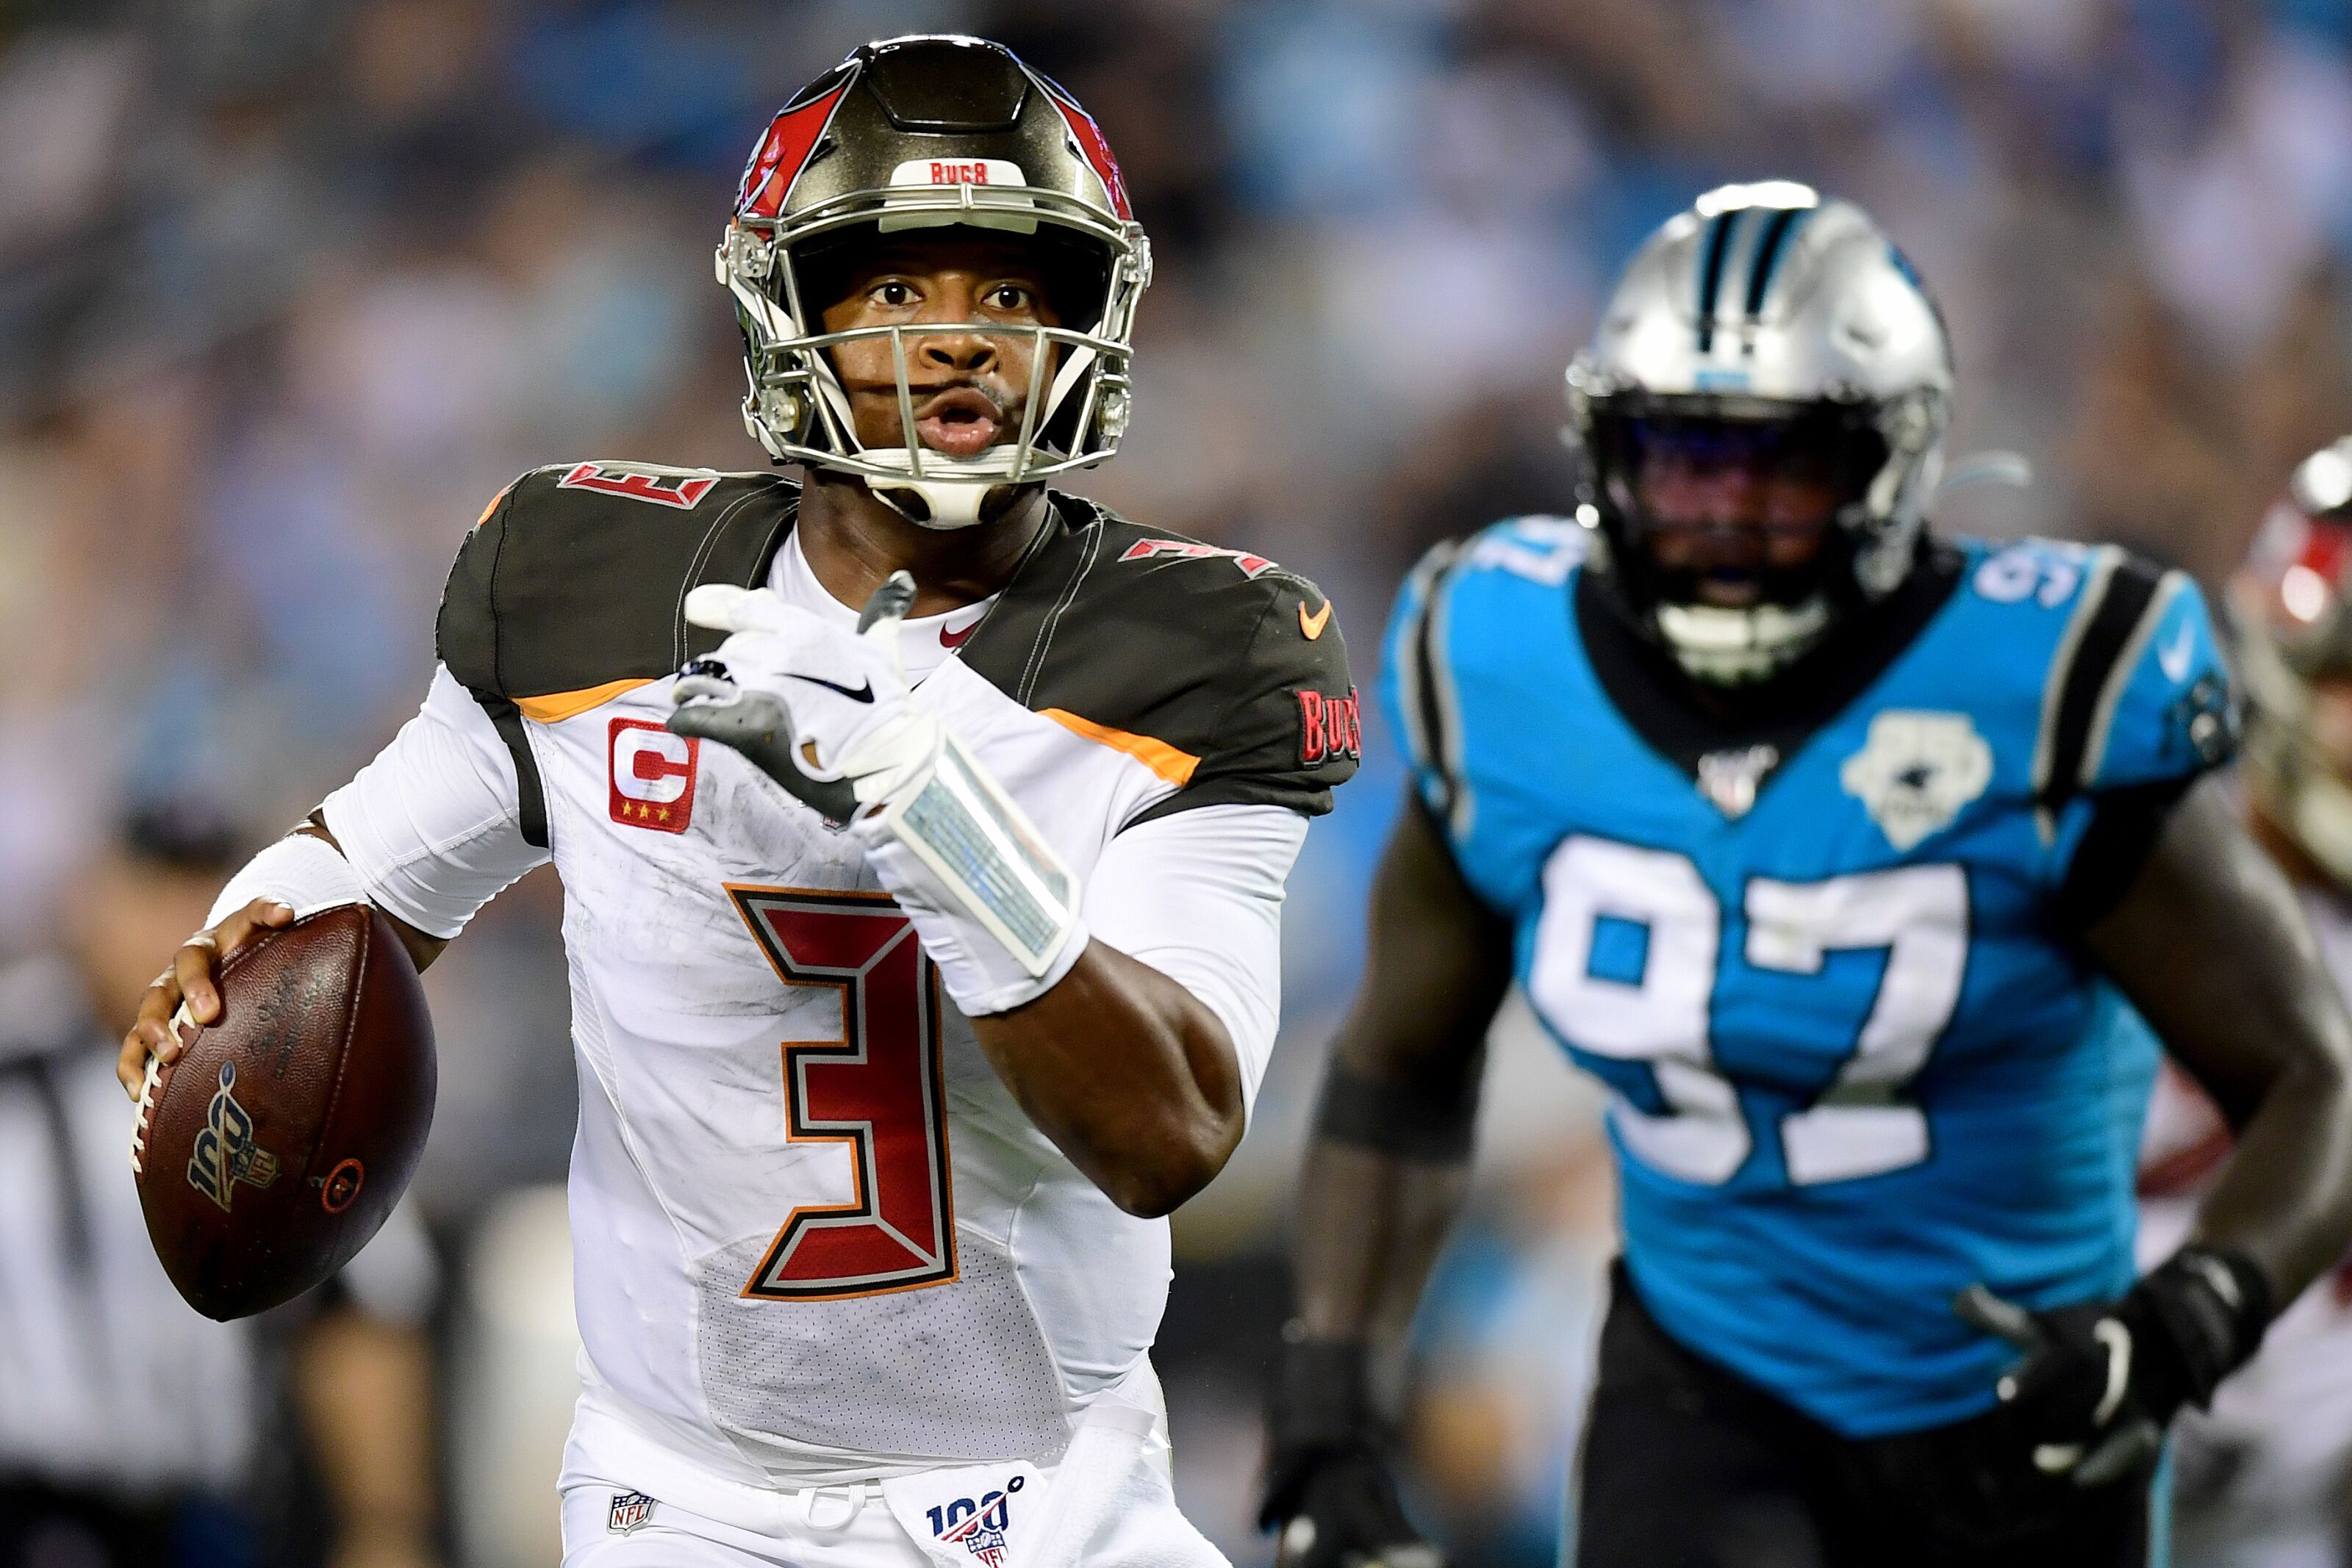 No more excuses: It's time for the Buccaneers to move on from Jameis Winston